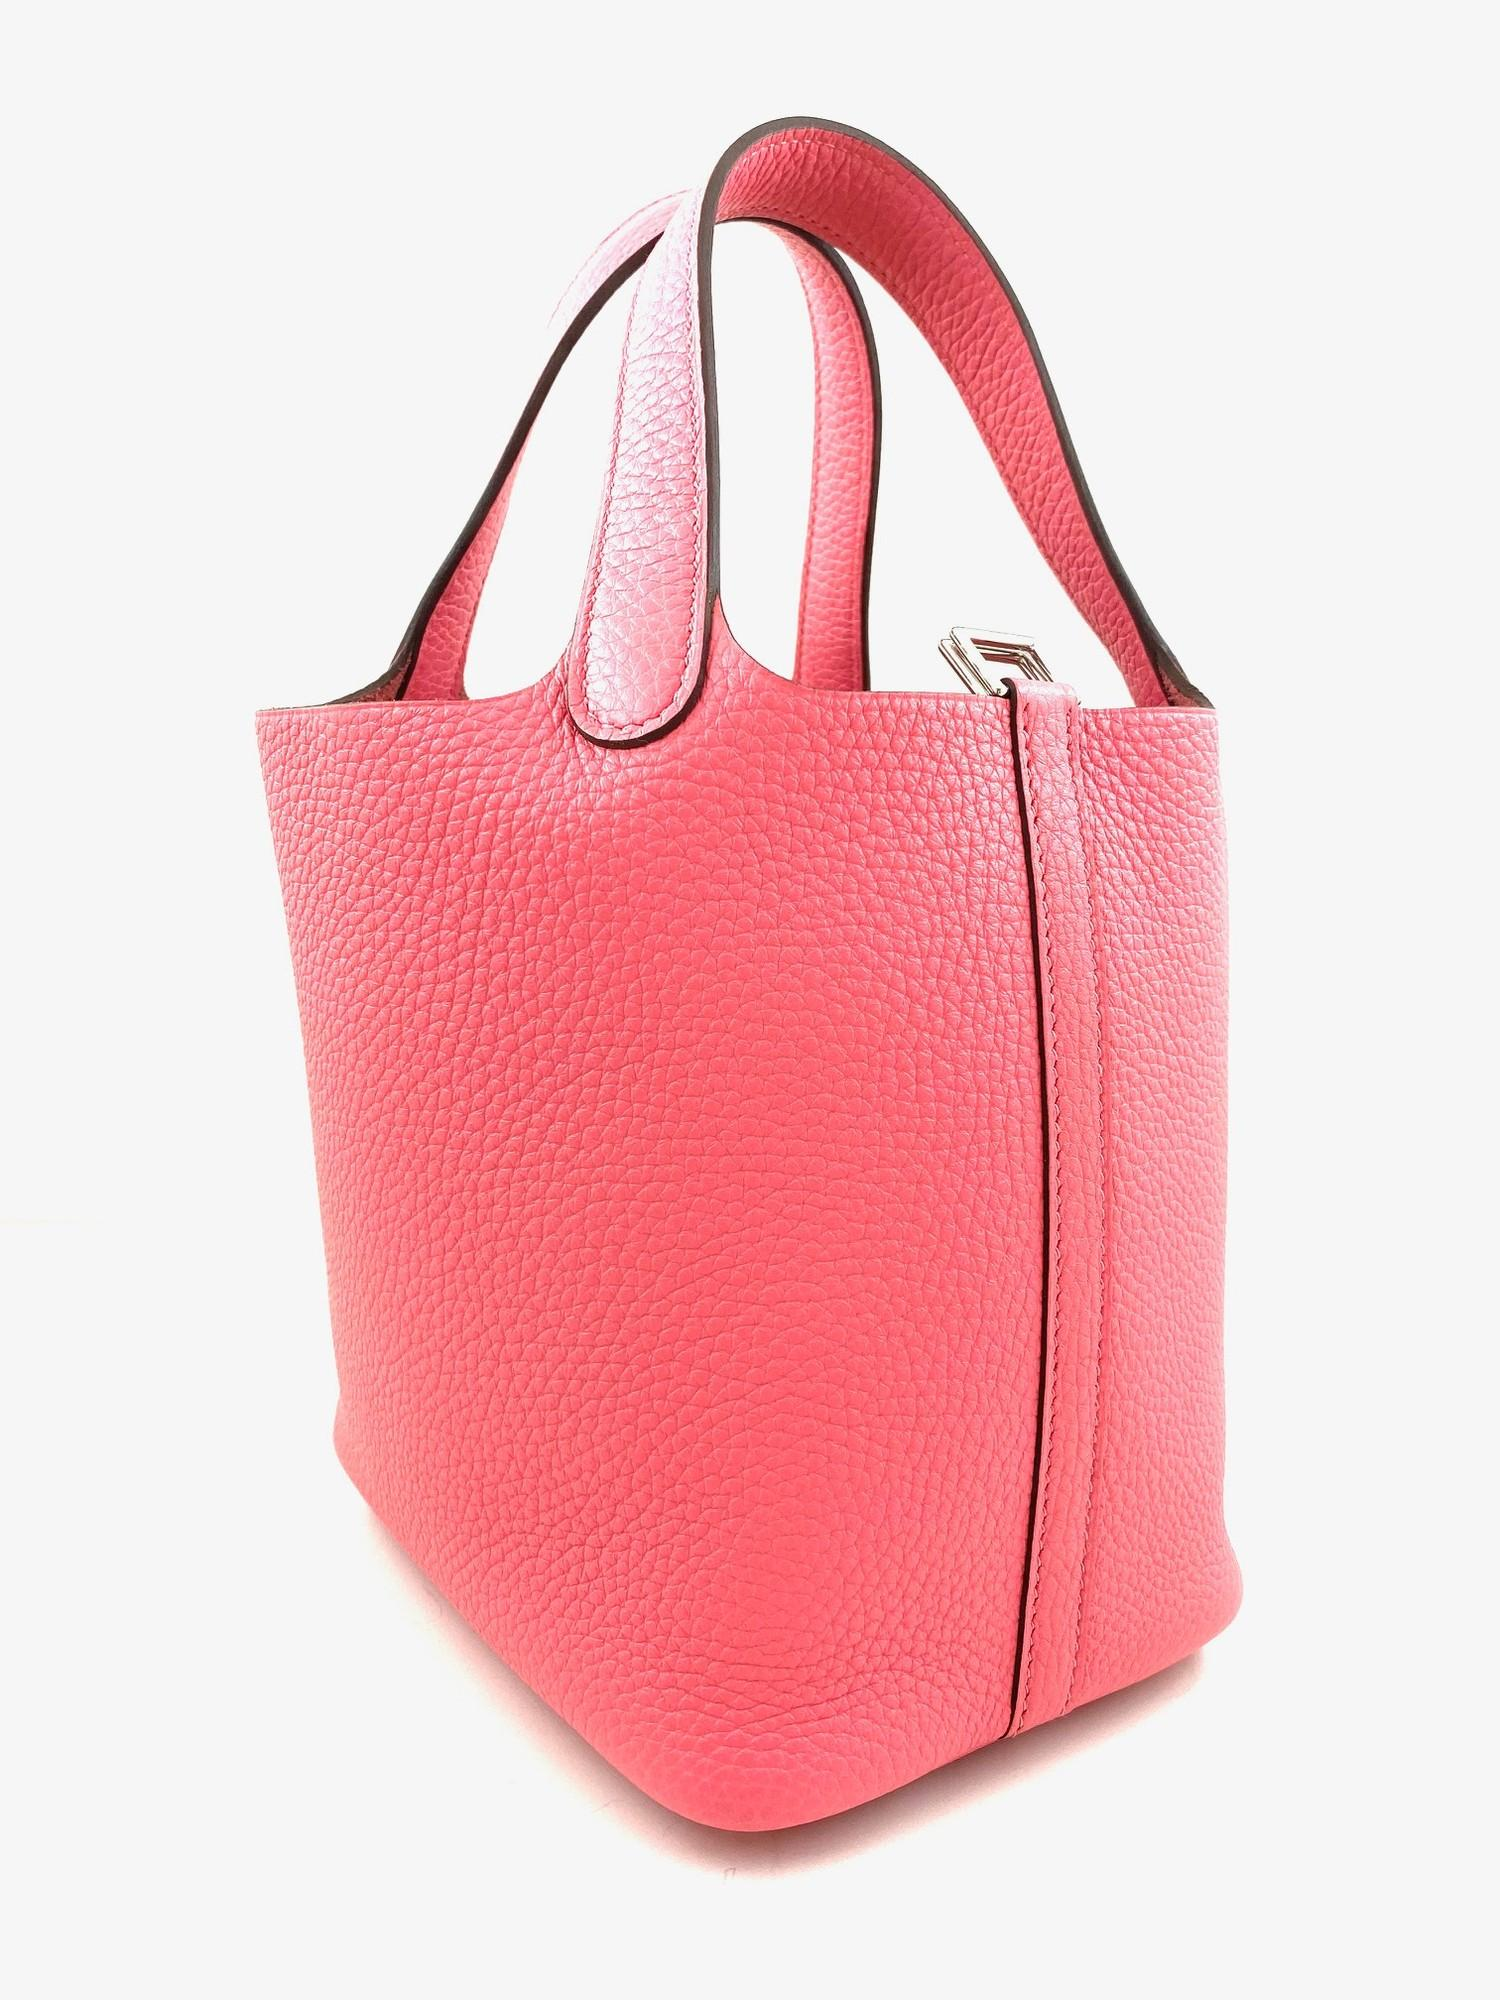 A Rose Azalee Hermes Picotin 18cm in clemence leather with palladium hardware. Includes Box, Dustbag - Image 2 of 5